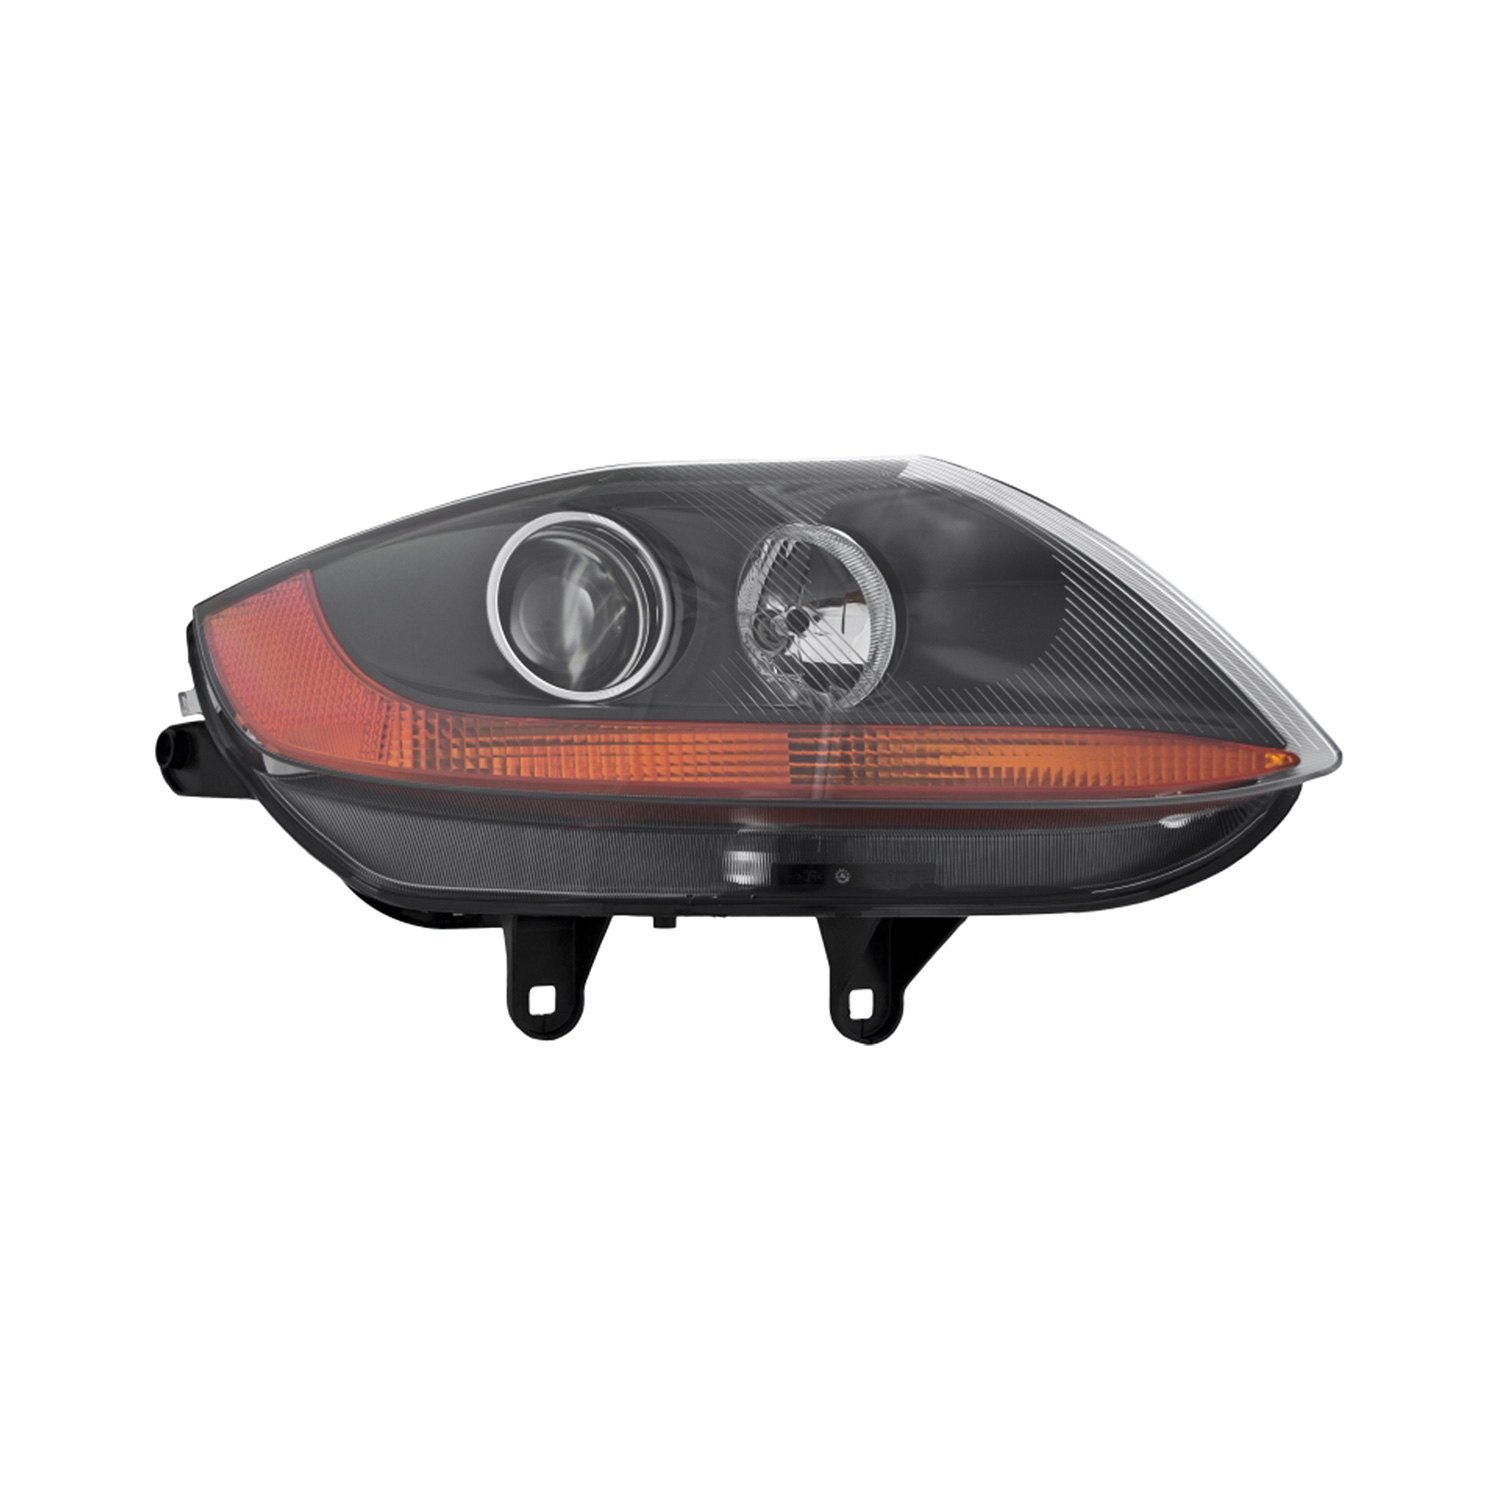 Bmw Z4 Headlights: BMW Z4 2003-2004 Replacement Headlight Lens And